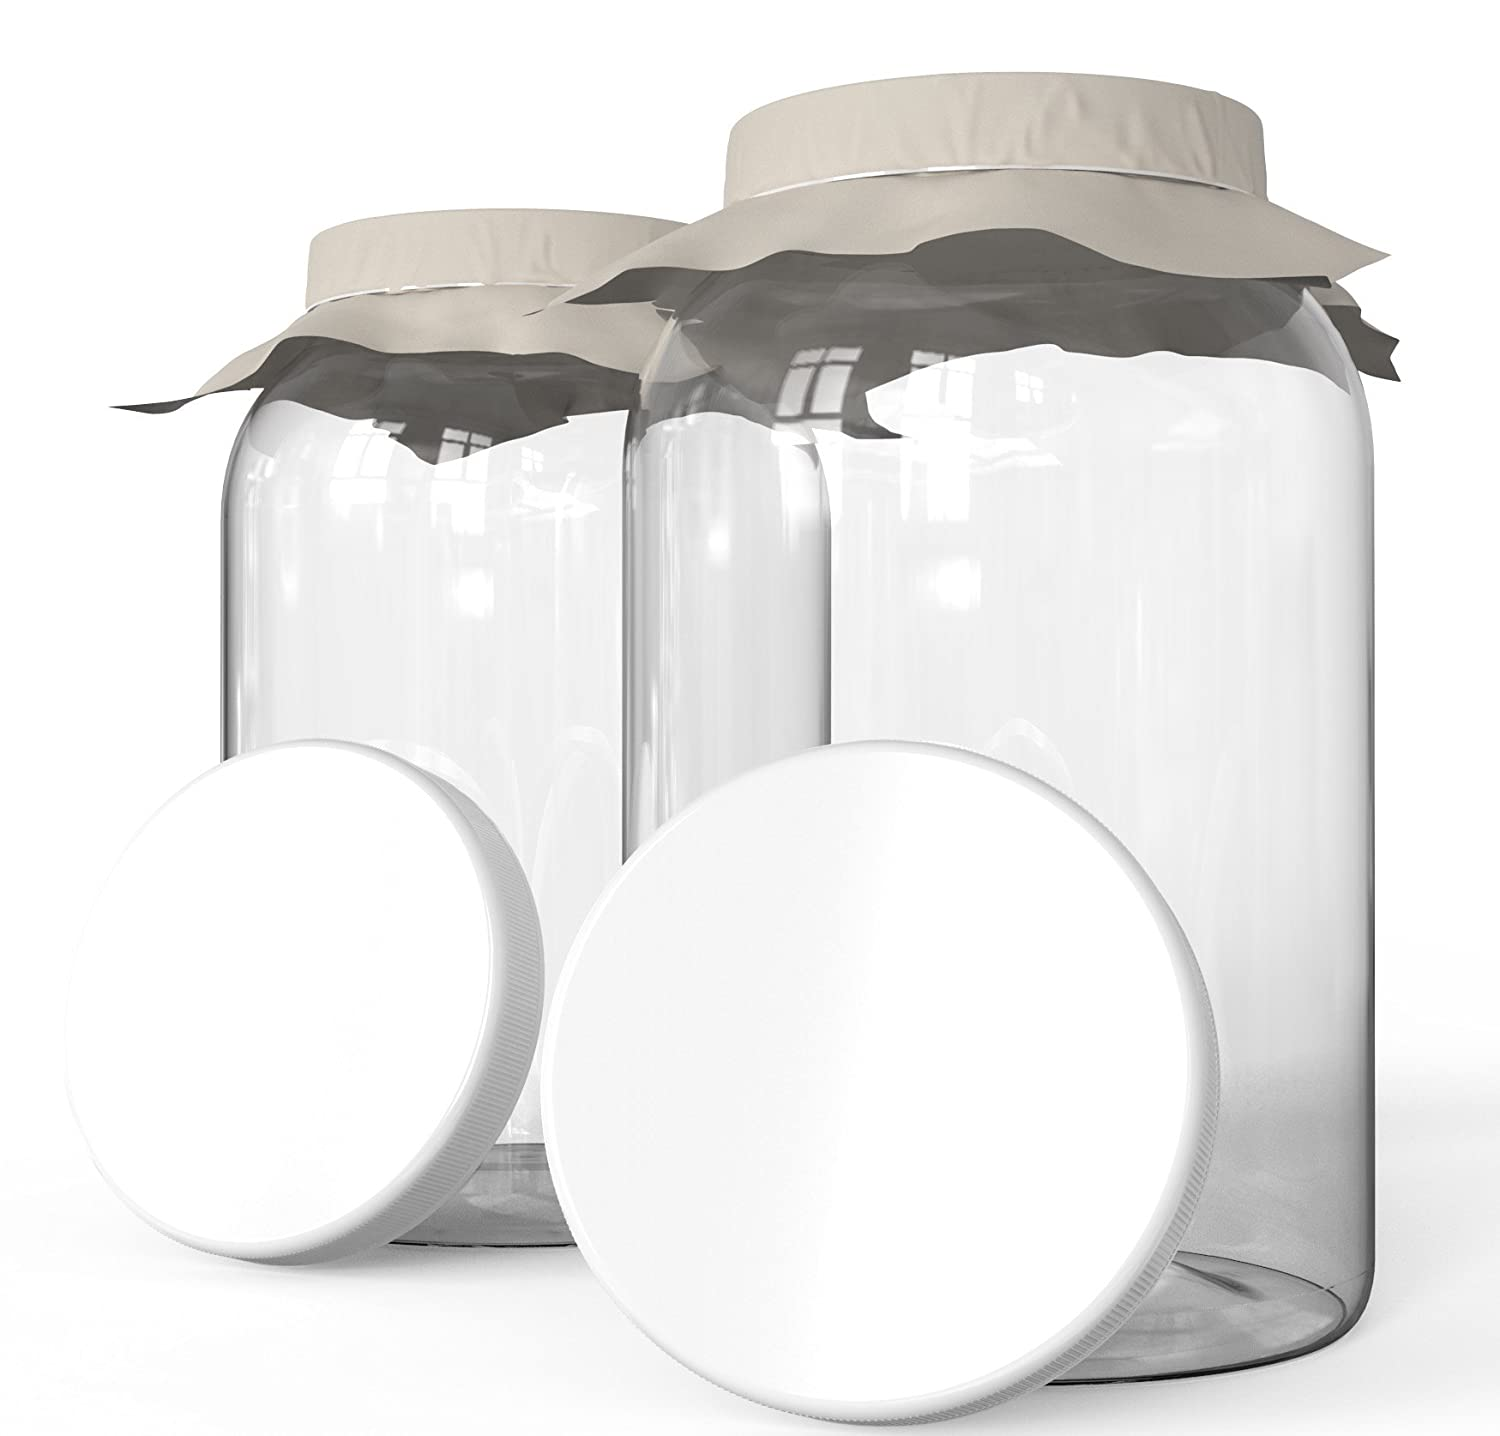 KombuJars Kombucha Jars 1 Gallon Glass (2 pack) Brewing Fermenting Storage Bottles, With Plastic Lids, Cloth Cover, and Bands (2)